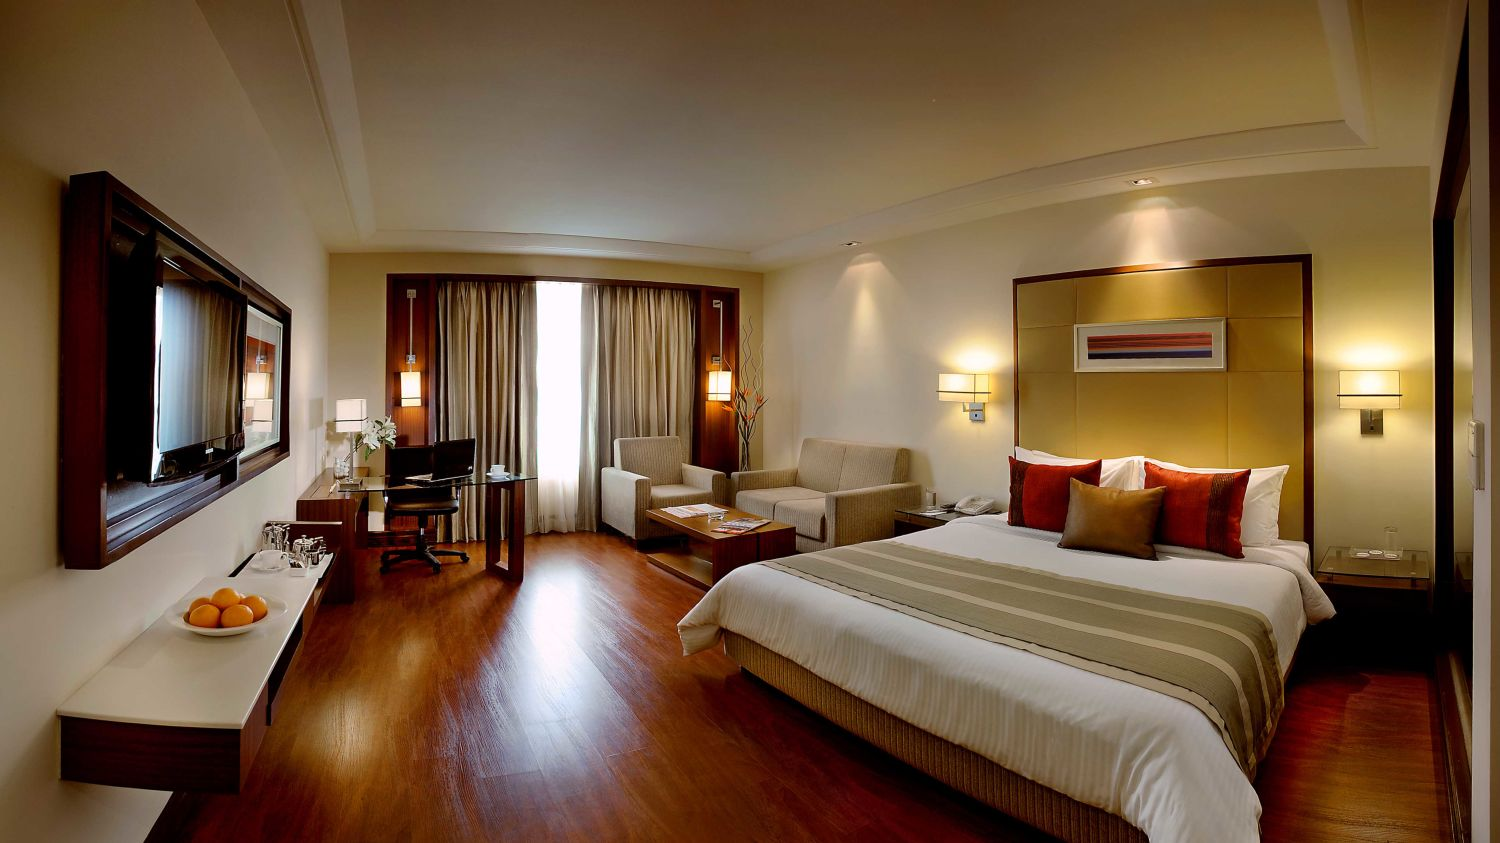 Superior Rooms at  Park Inn, Gurgaon - A Carlson Brand Managed by Sarovar Hotels, best hotels in gurgaon 1